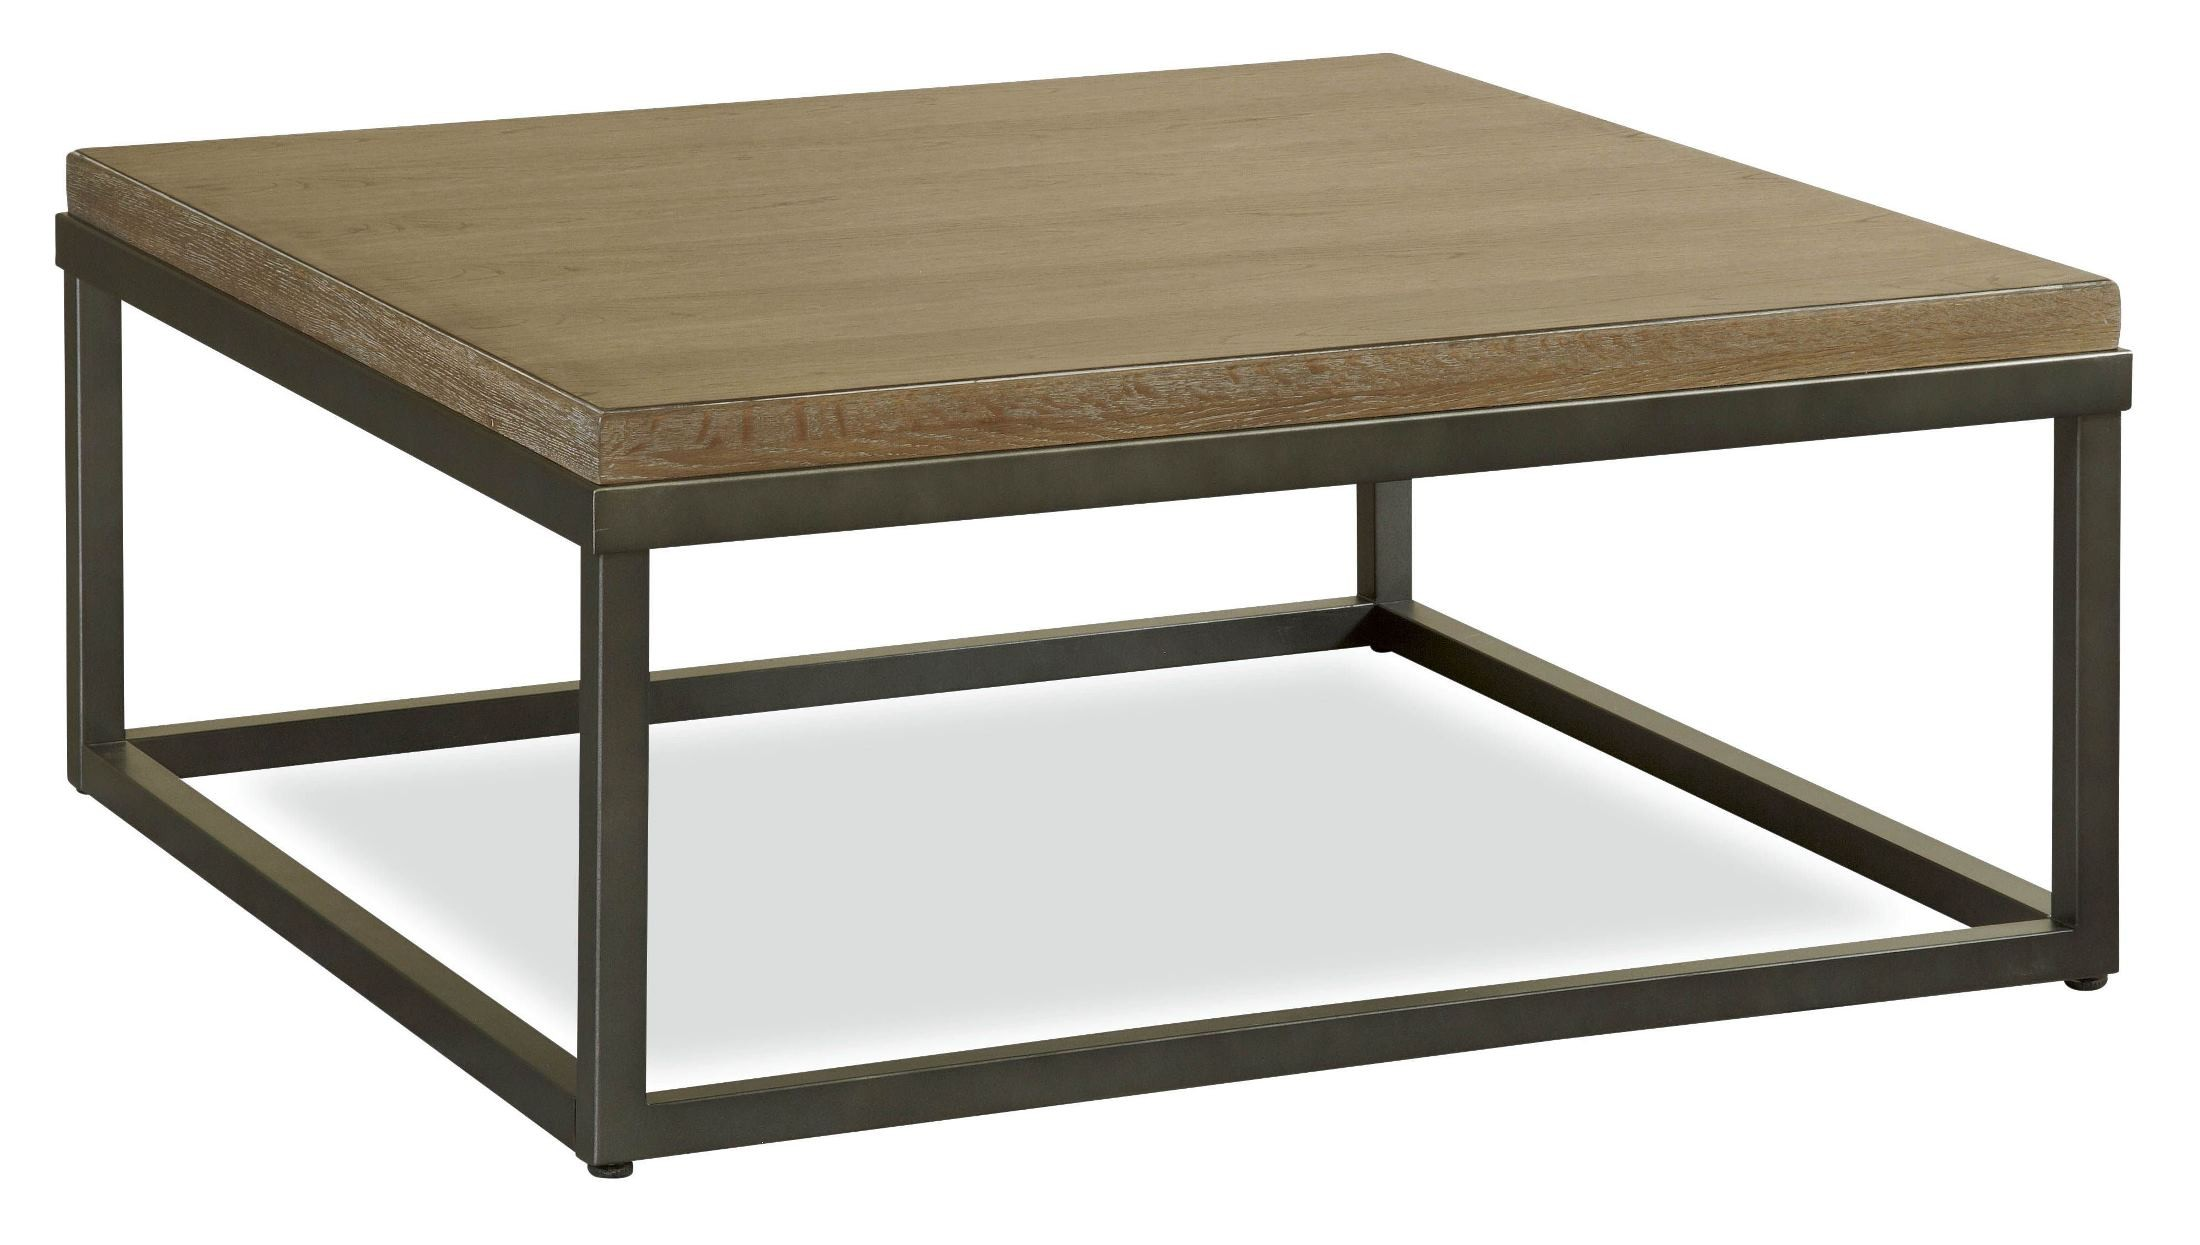 Berkeley3 studio square cocktail table from universal for Square cocktail table